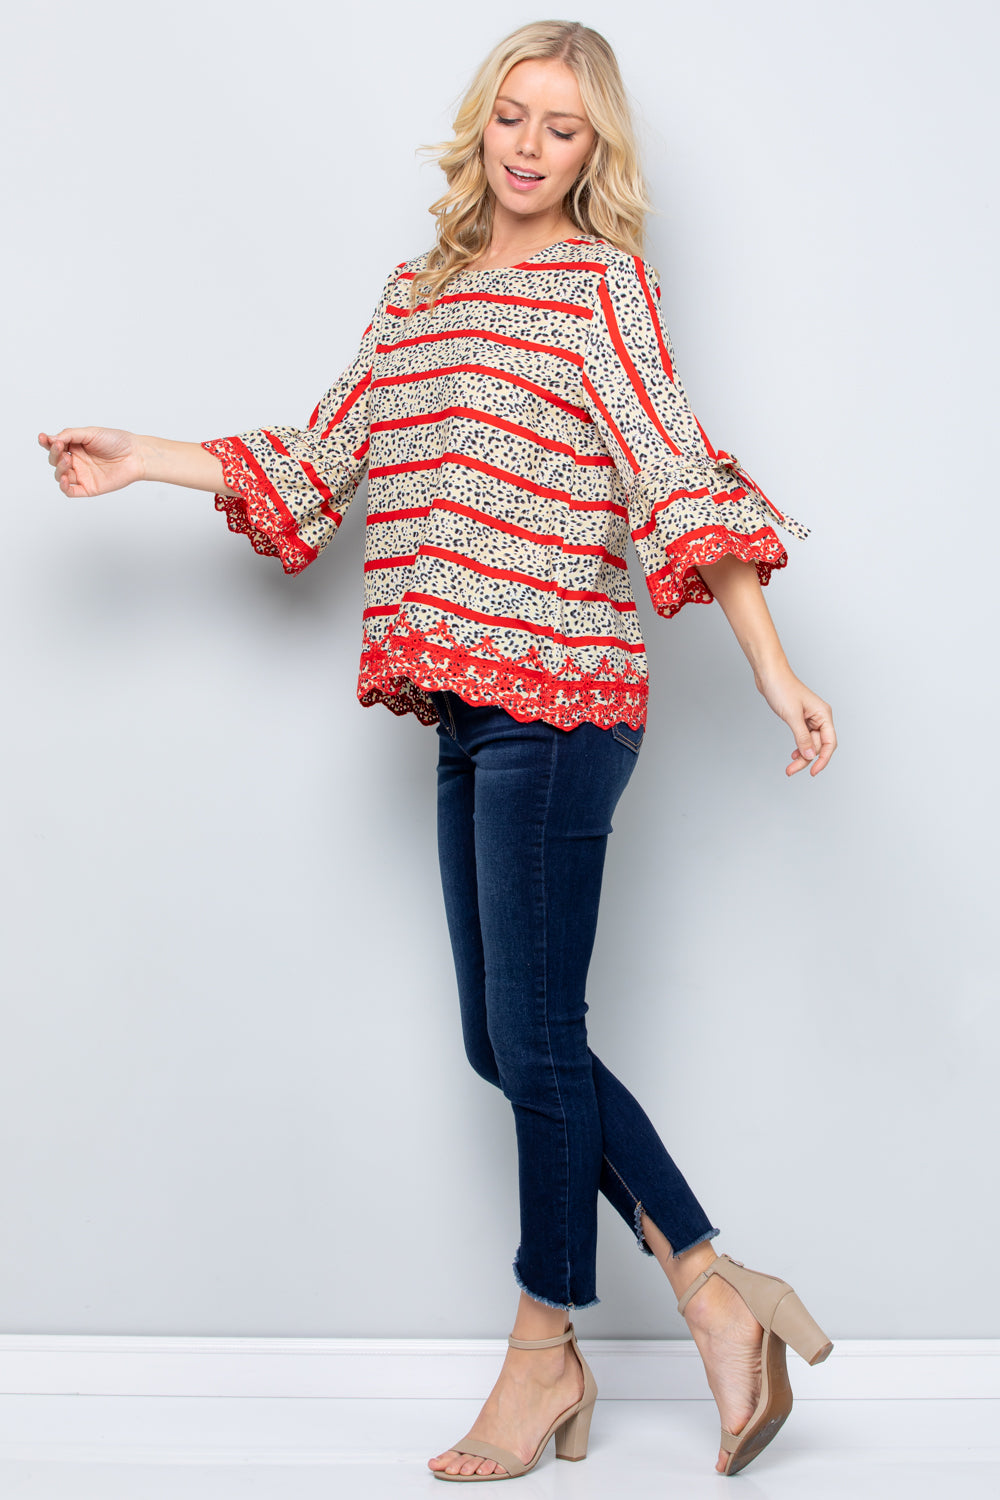 T2837 Scallop Embroidery Bell Sleeve Top - Grey/Yellow